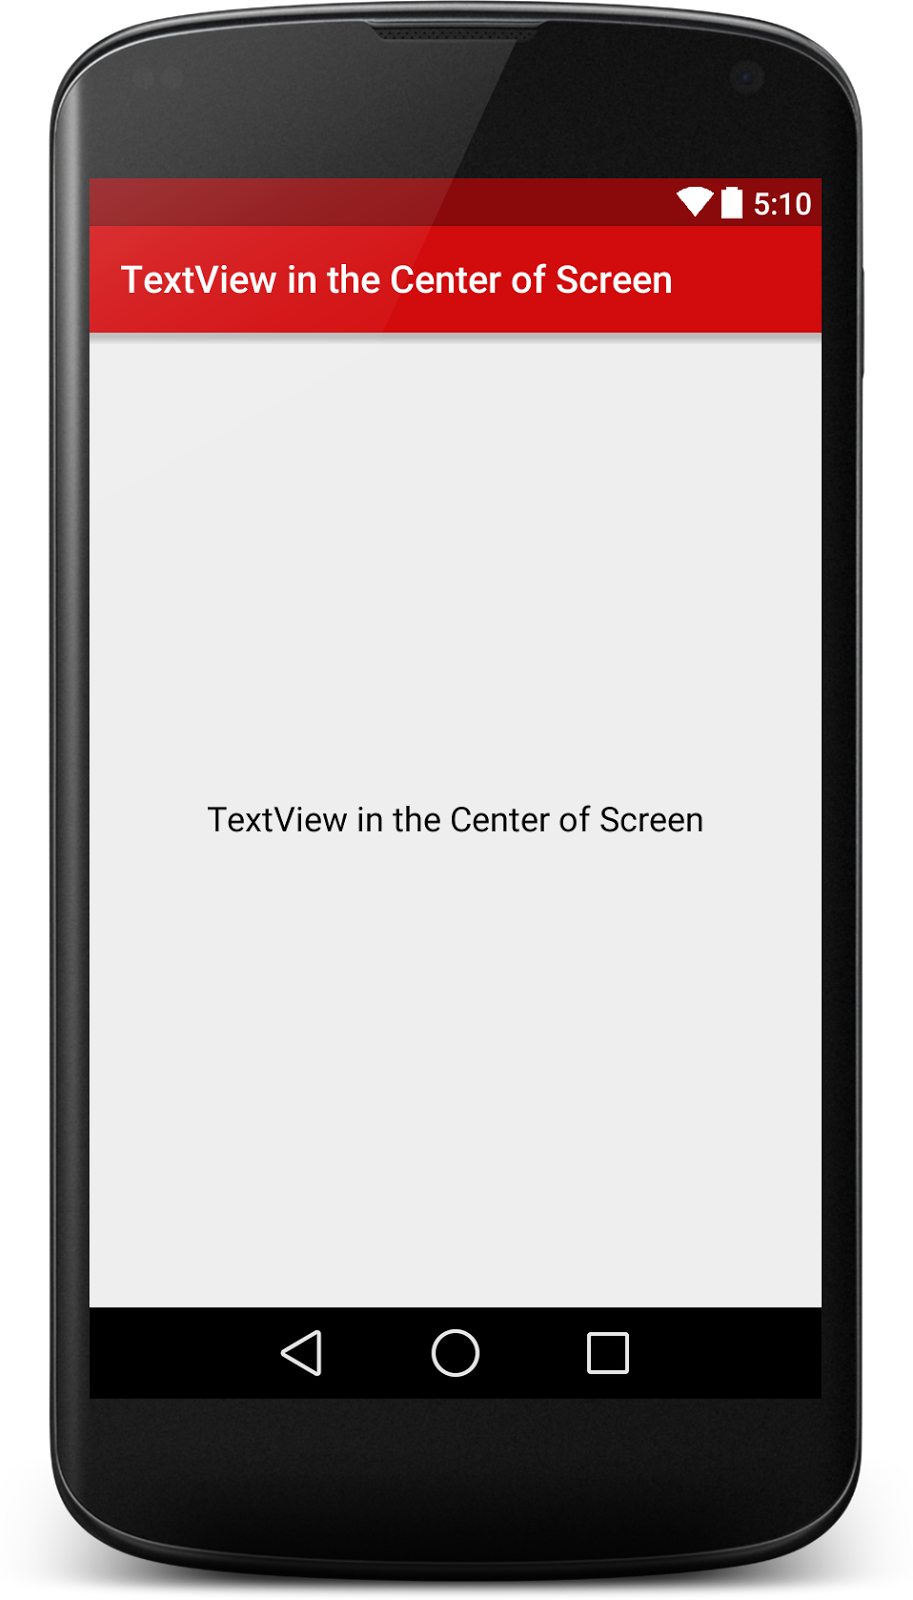 How to Align Android TextView in the Center of the Screen